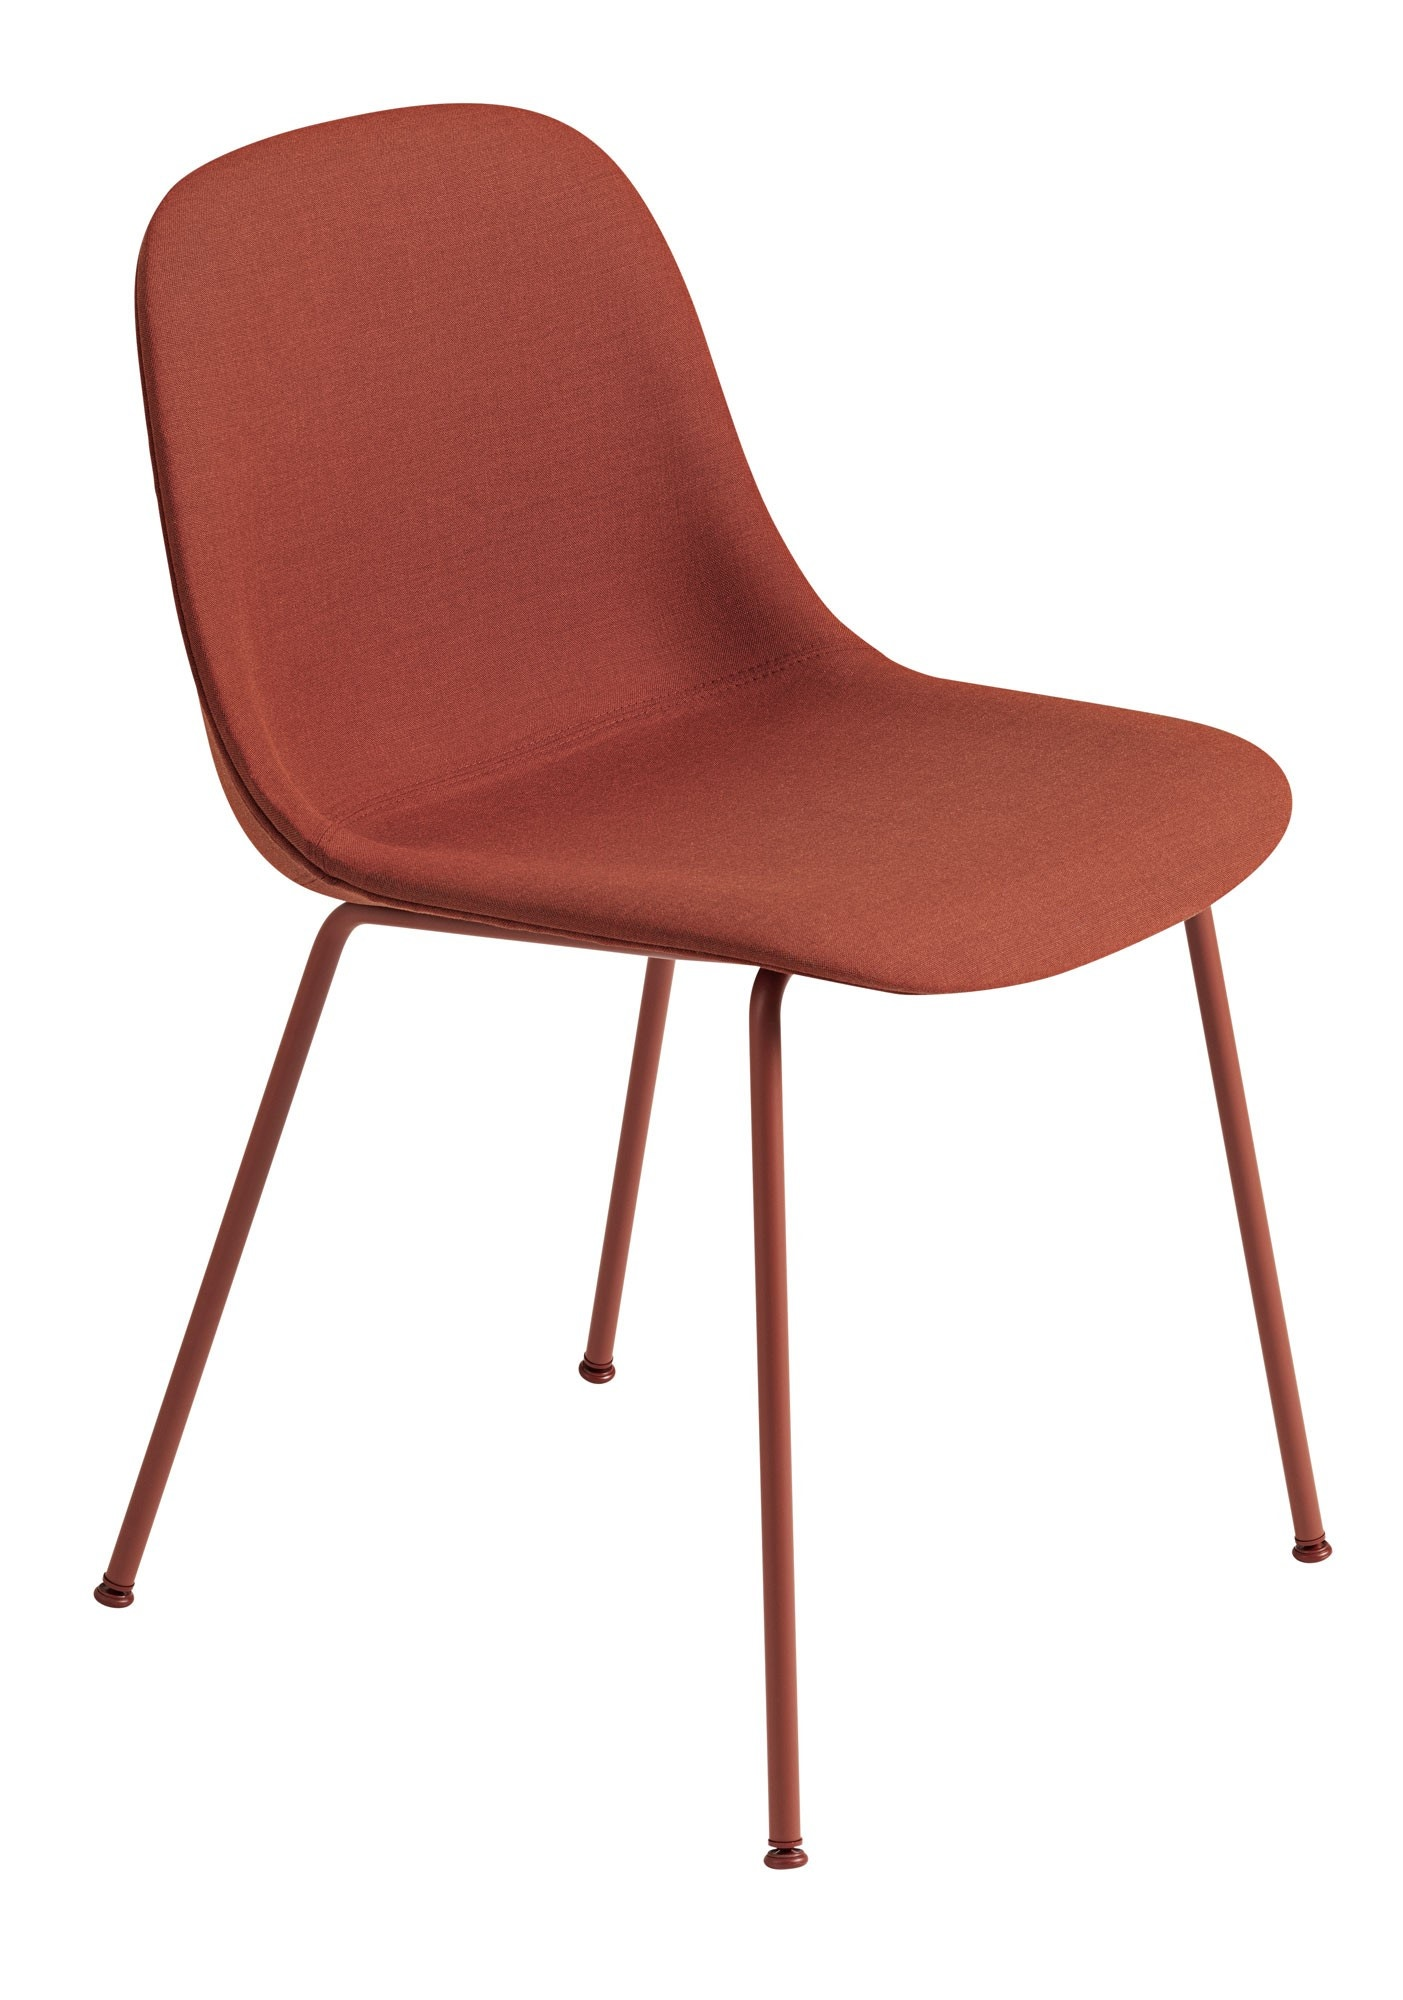 Muuto Tube Base Upholstered Fiber Side Chair GR Shop Canada